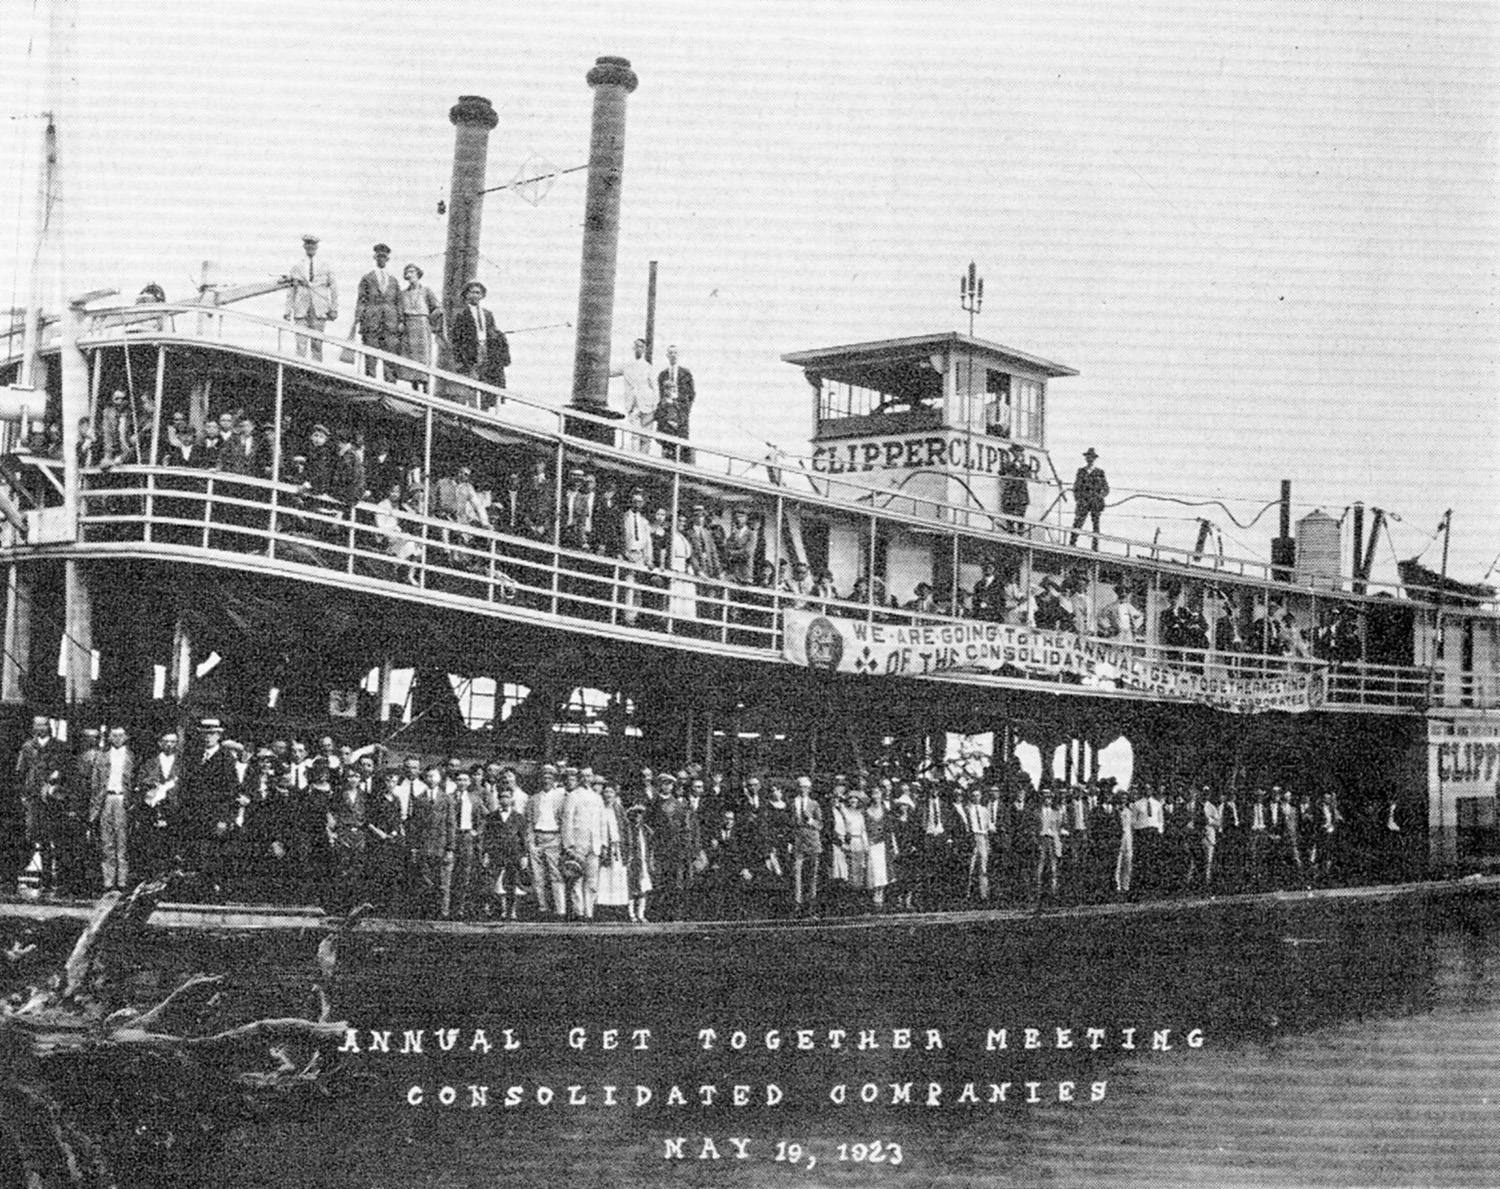 The Clipper with a crowd of excursionists aboard in 1923.